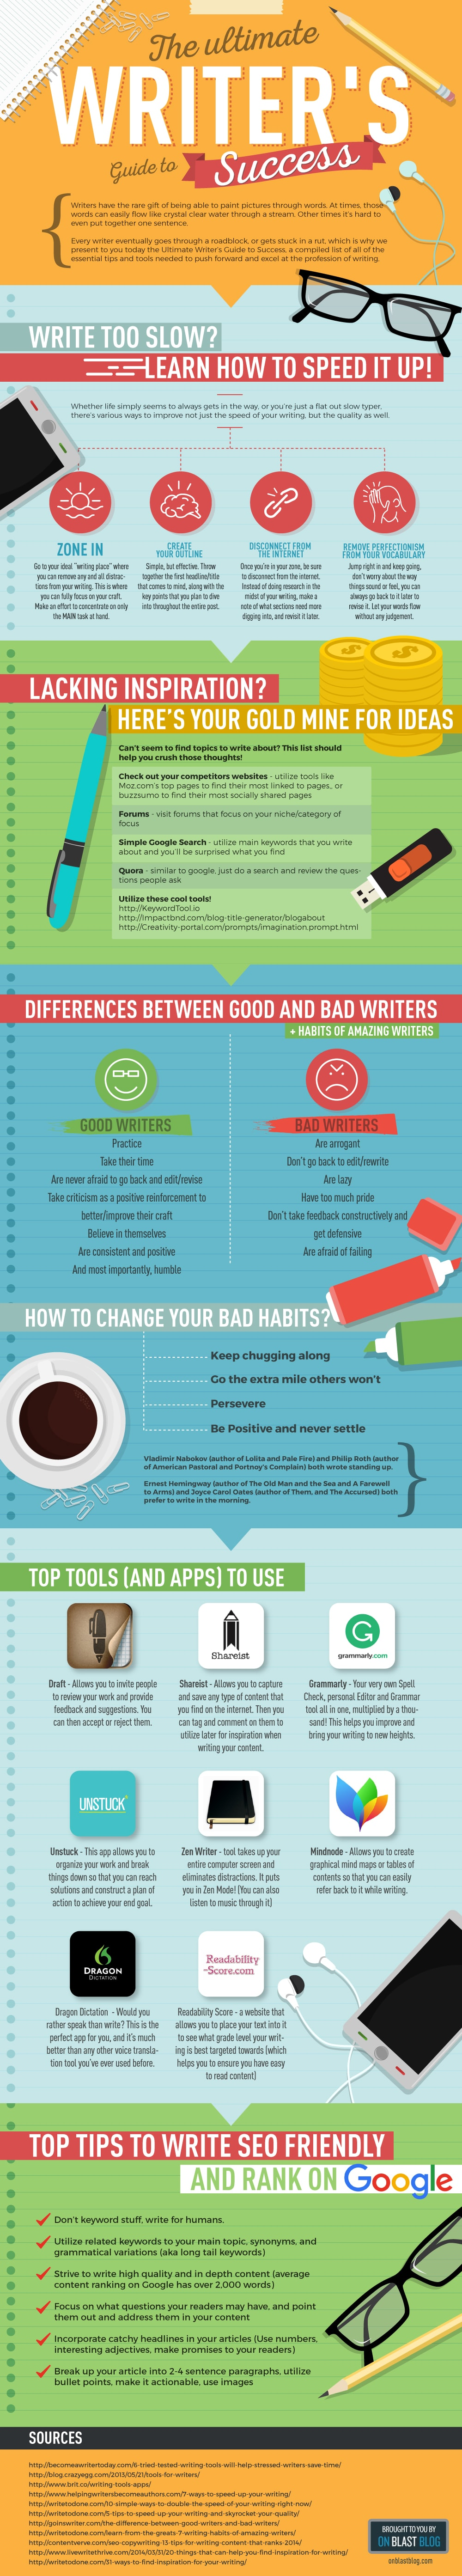 Writing Guide Writer S Guide To Success Infographic On Blast Blog